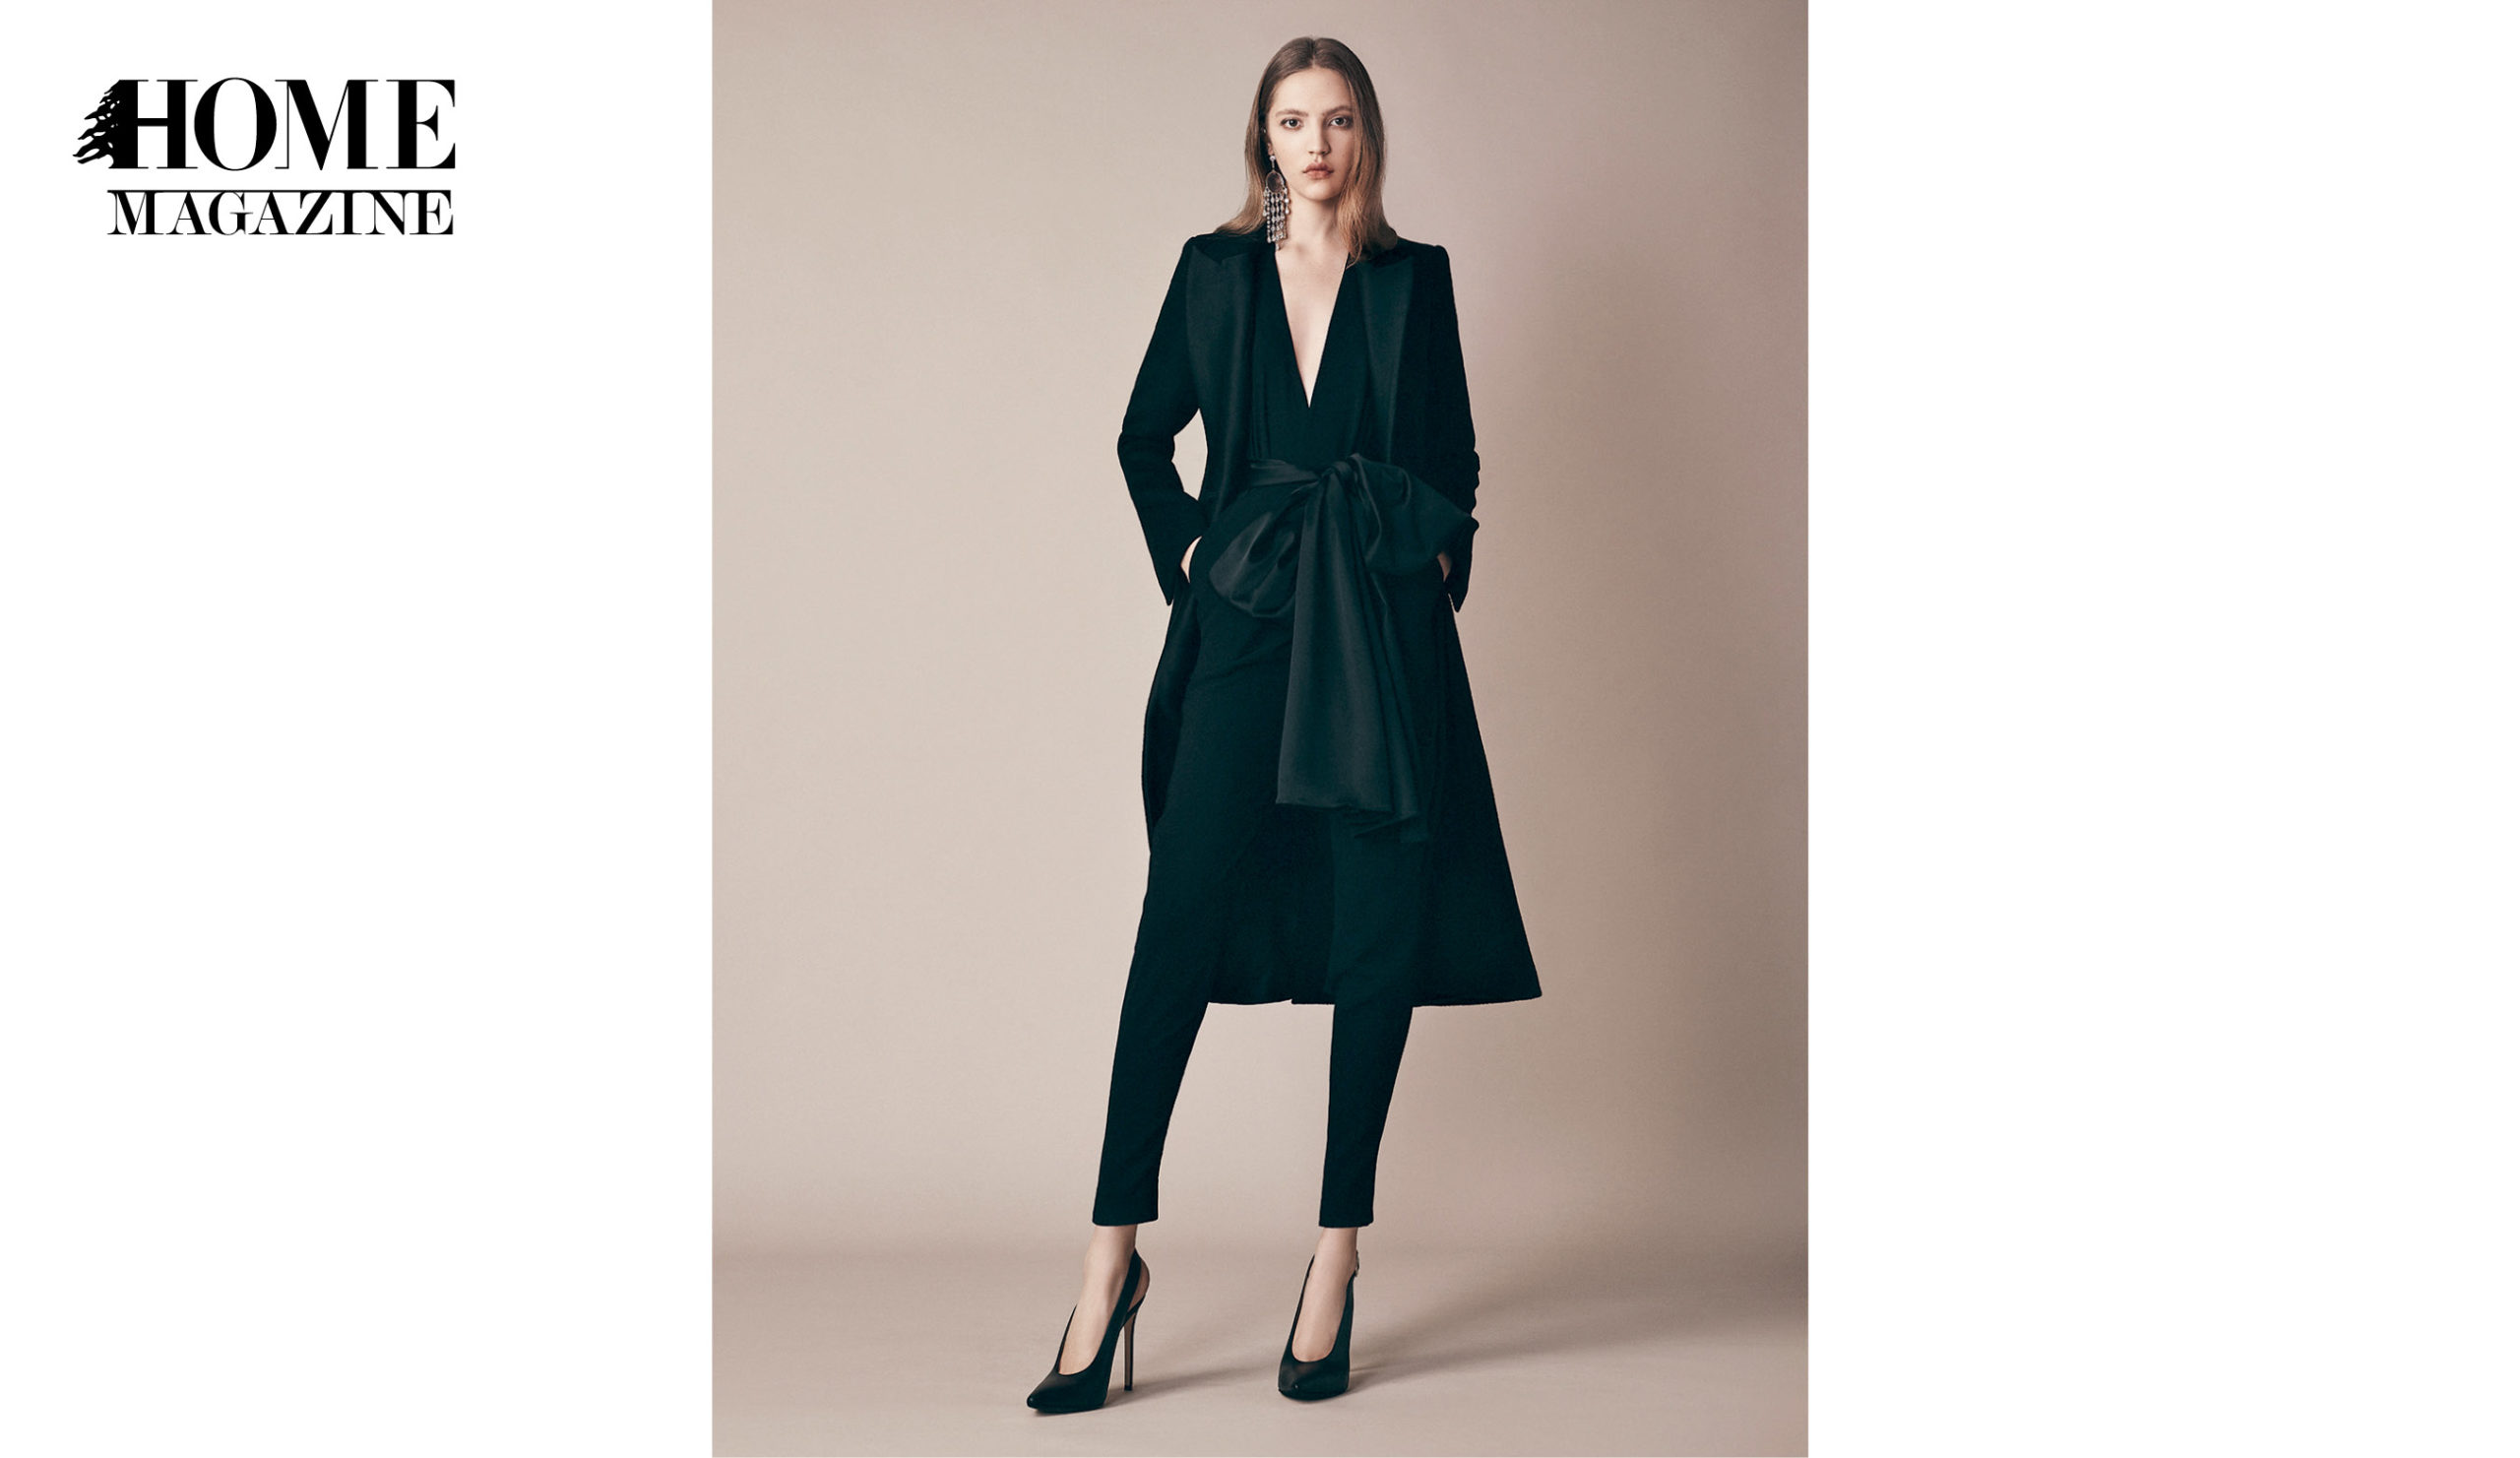 Model wearing black coat